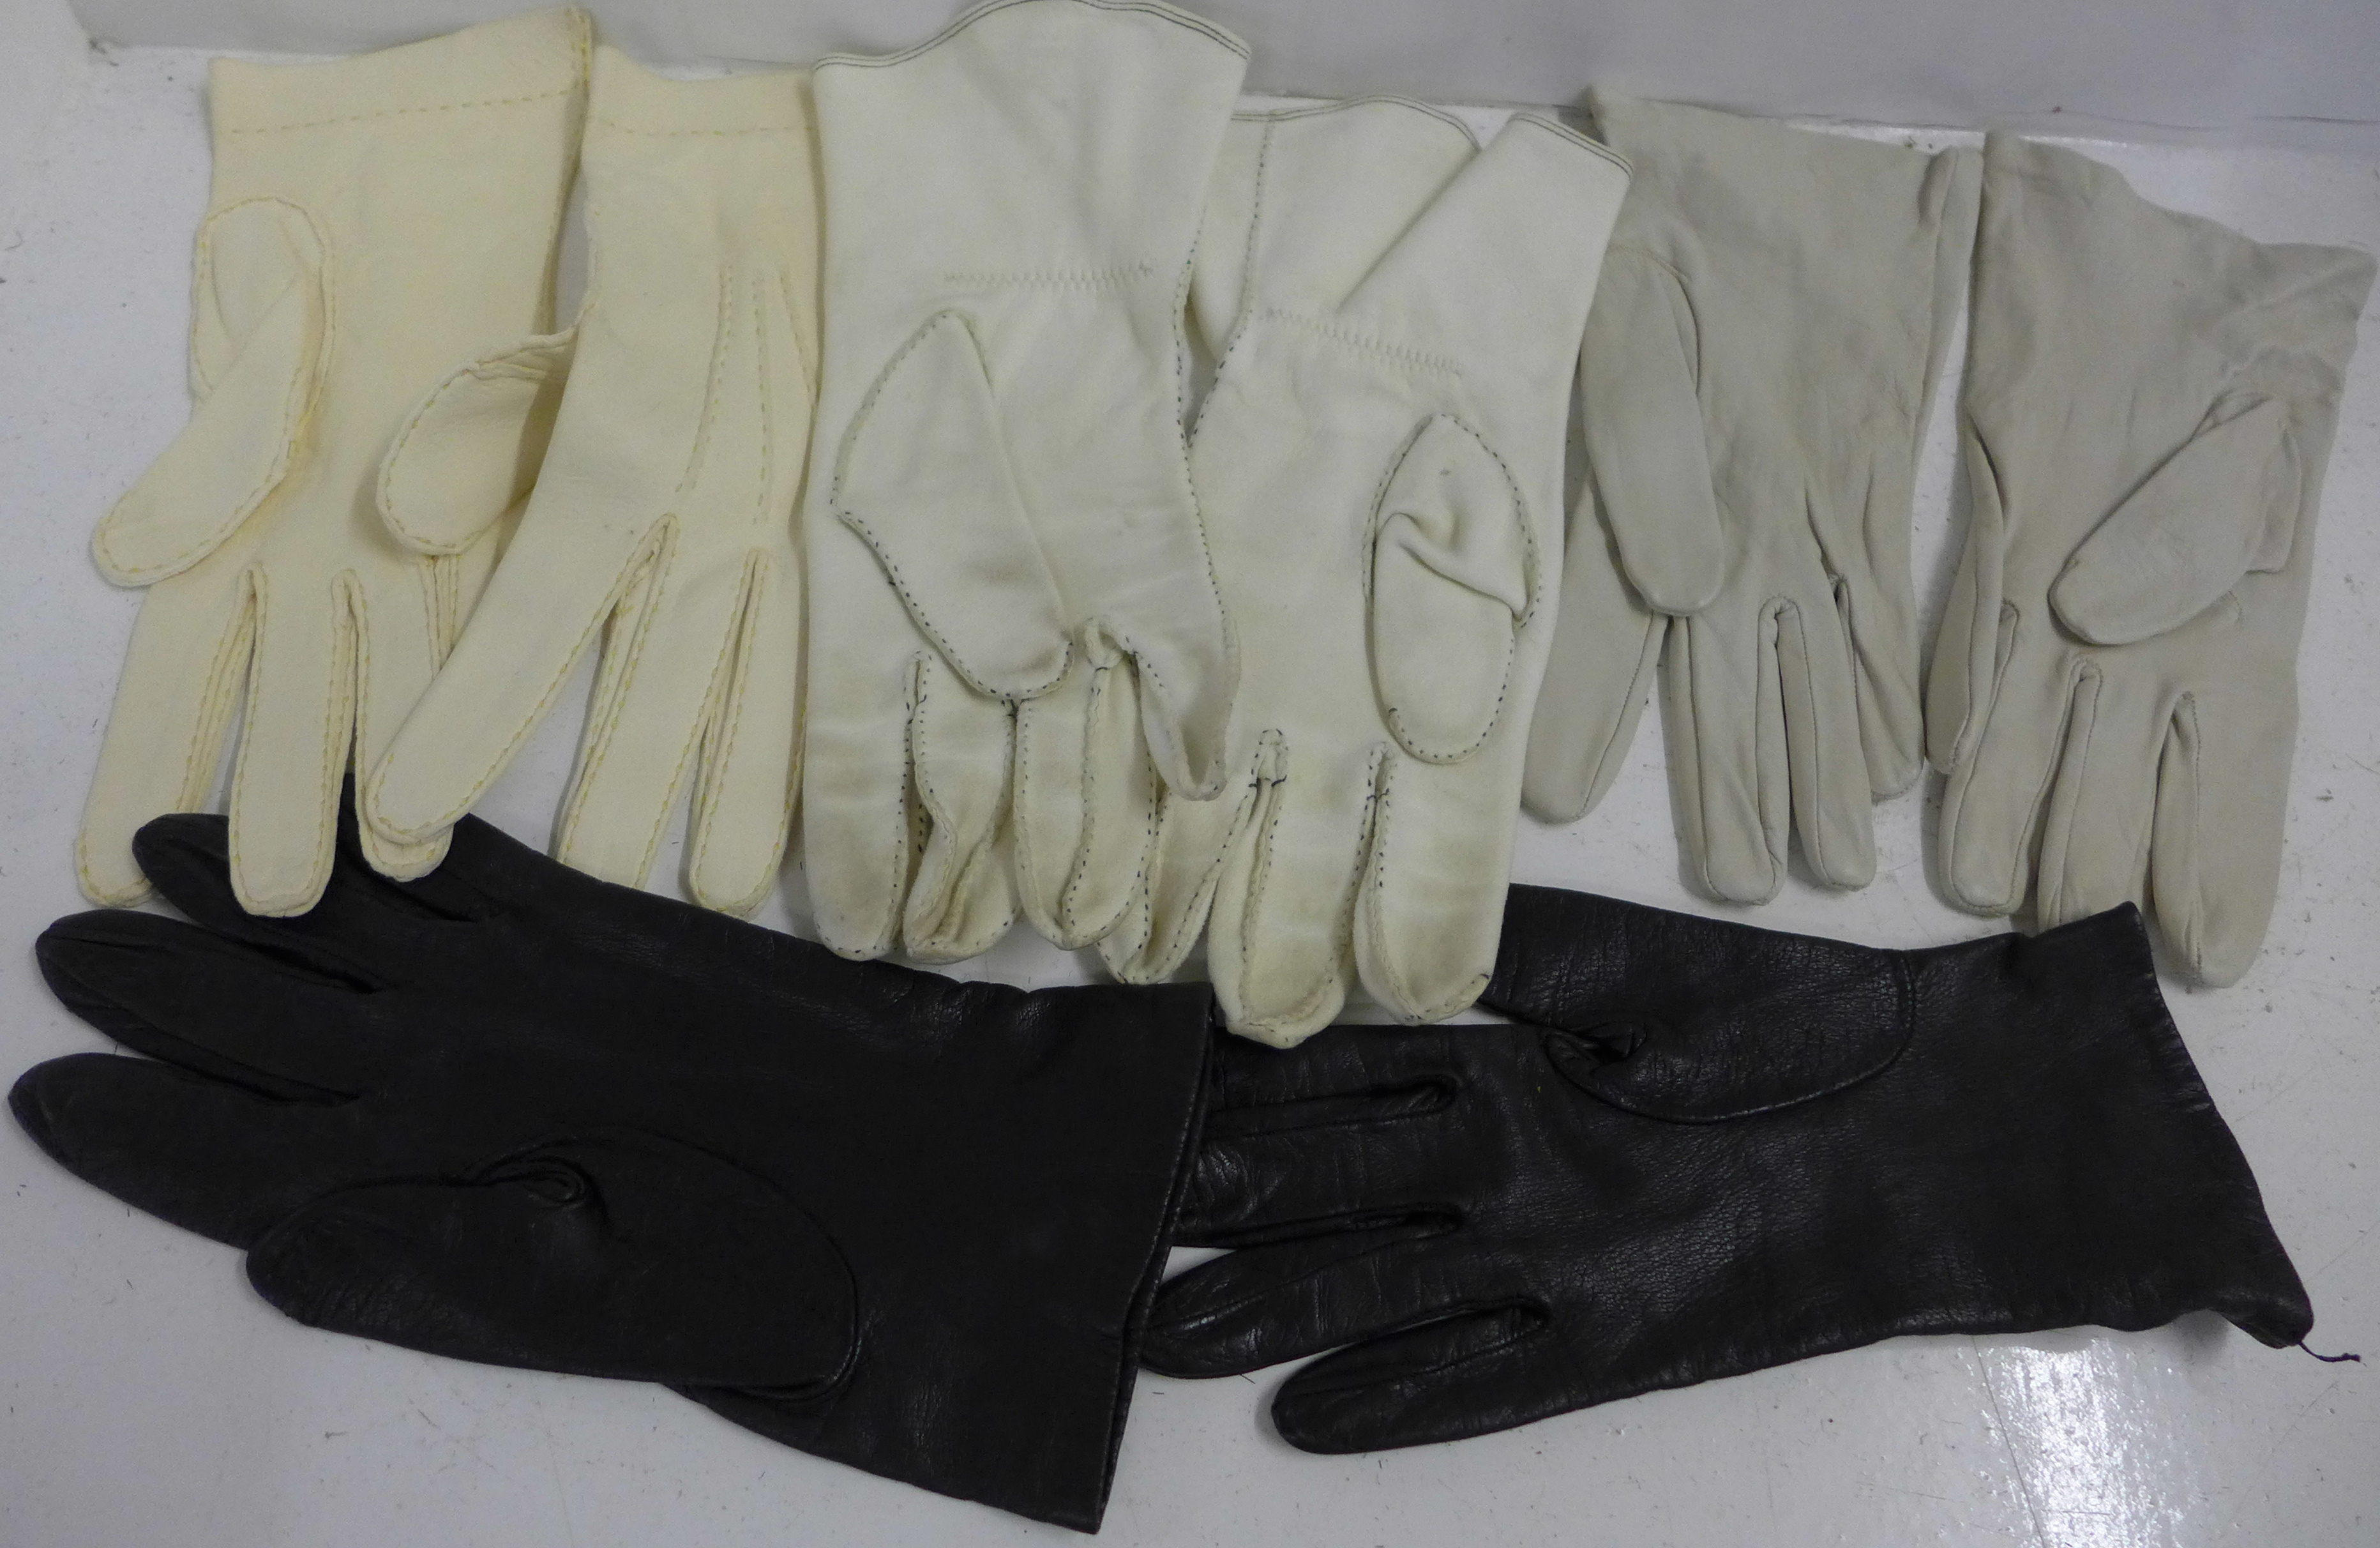 Four pairs of vintage leather gloves